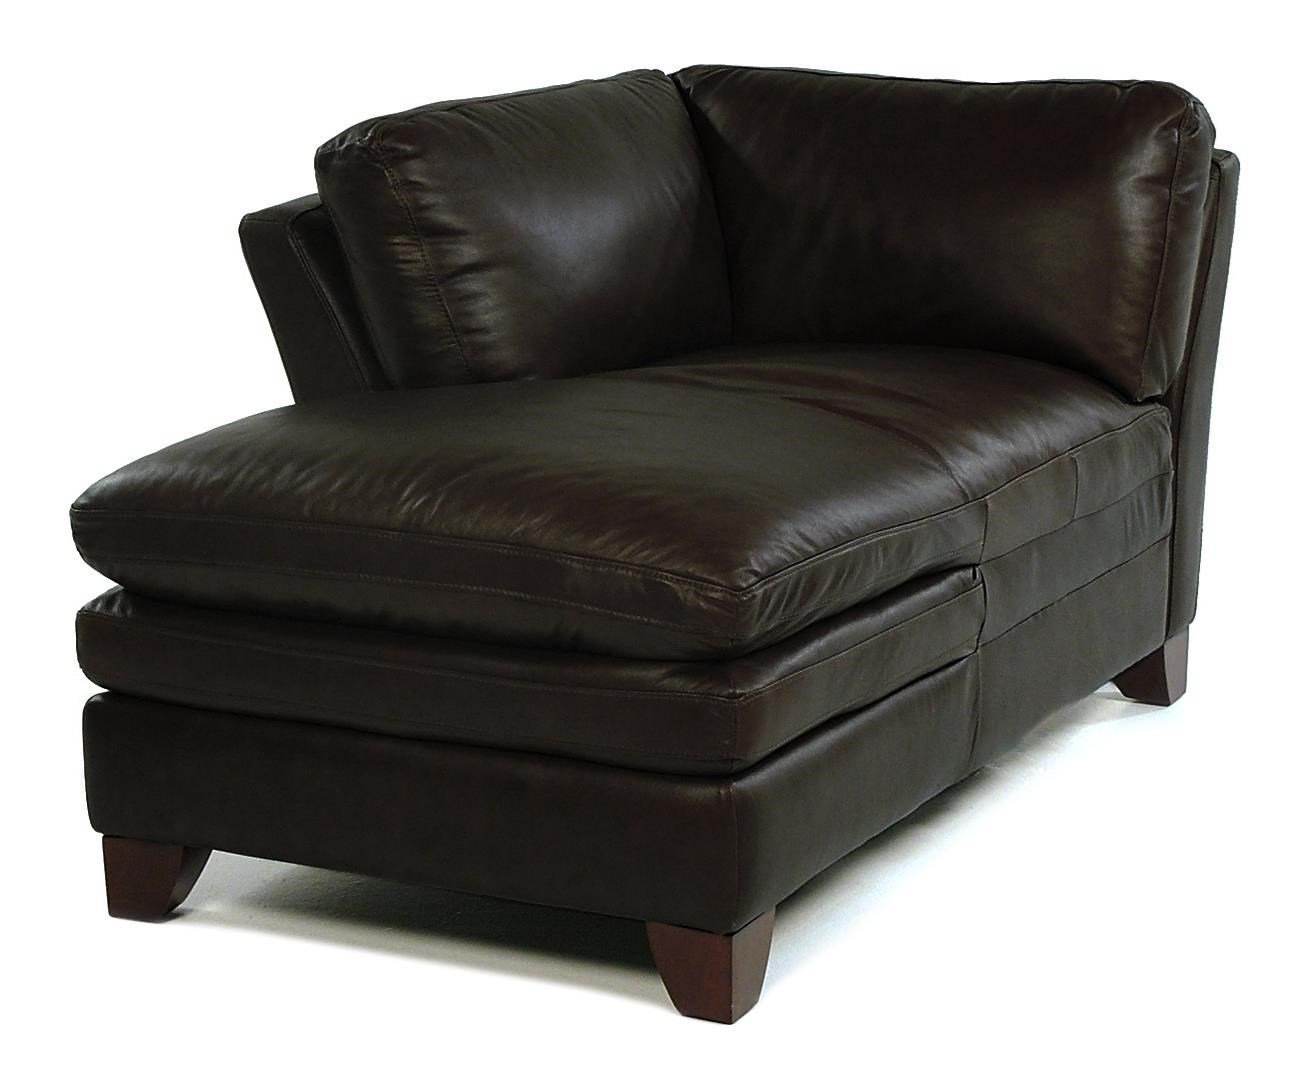 Loft Leather Pacific LAF Chaise - Item Number: 7203-52